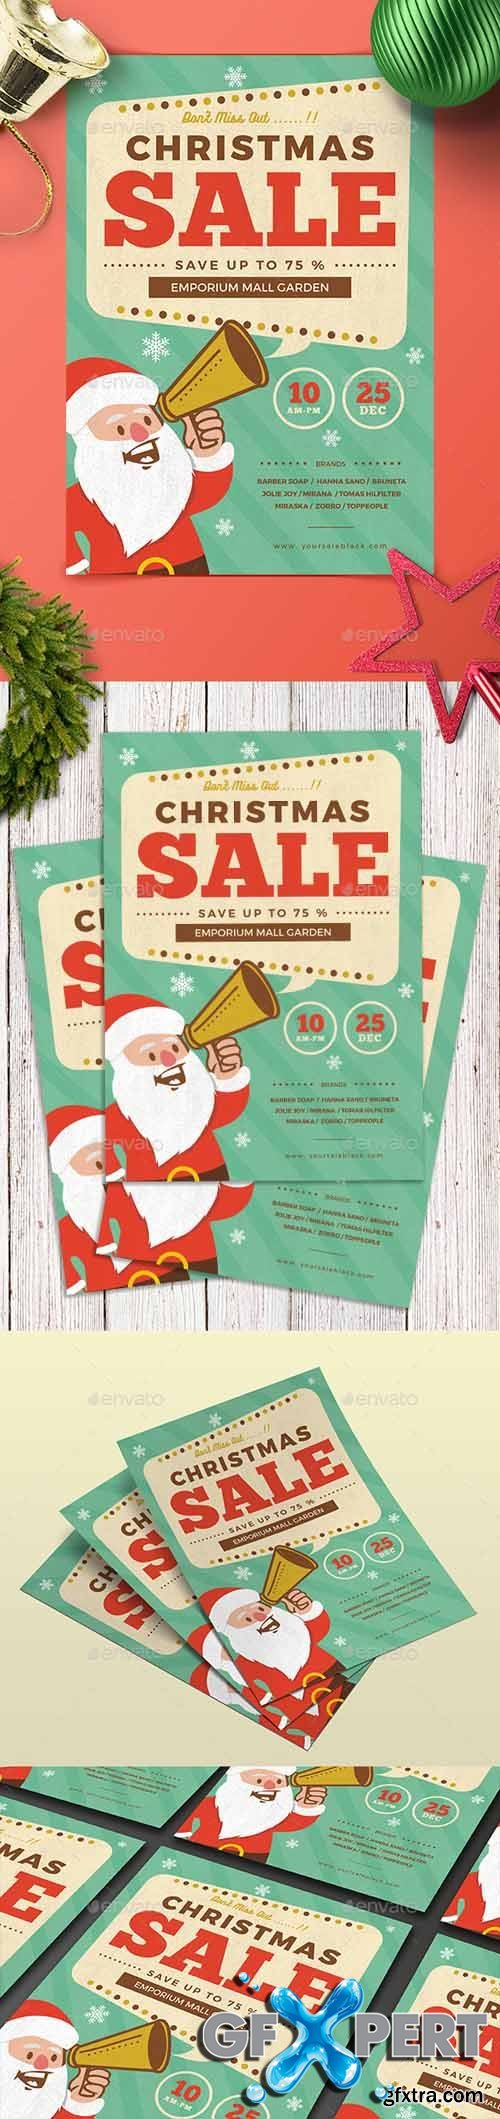 GR - Retro Christmas Sale 19078167